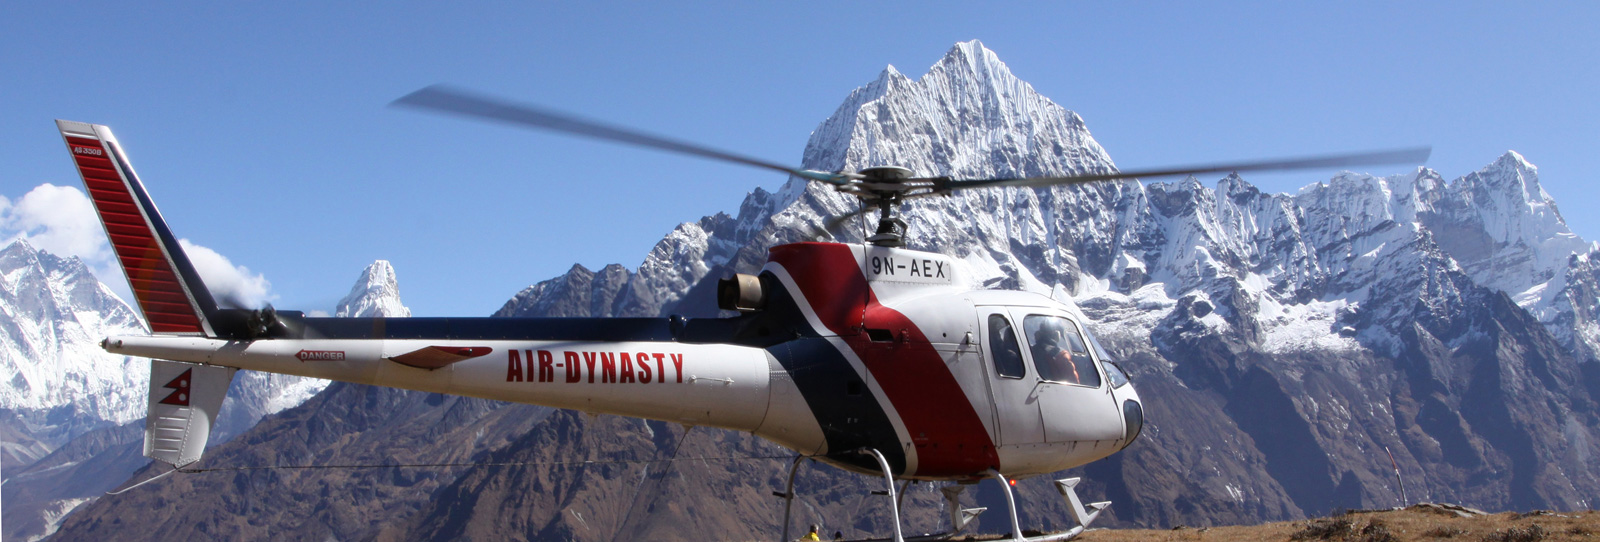 Muktinath Pilgrimage Helicopter Day Tour